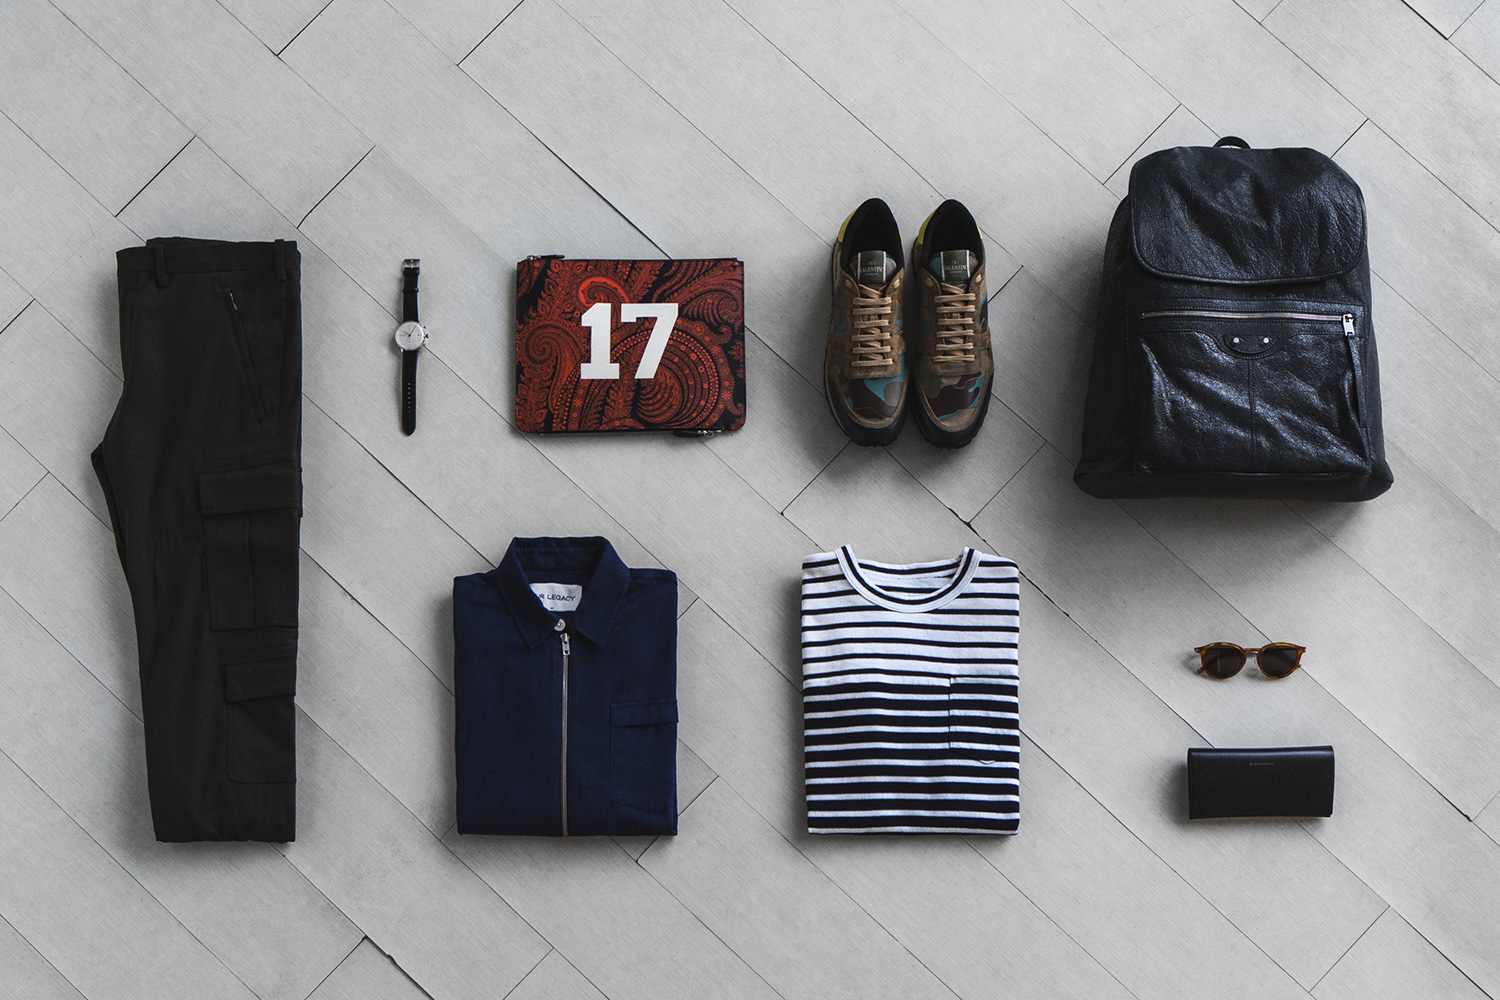 Le Meilleur Essentials Sean Lee Davies For Mr Porter Hypebeast Ce Mois Ci